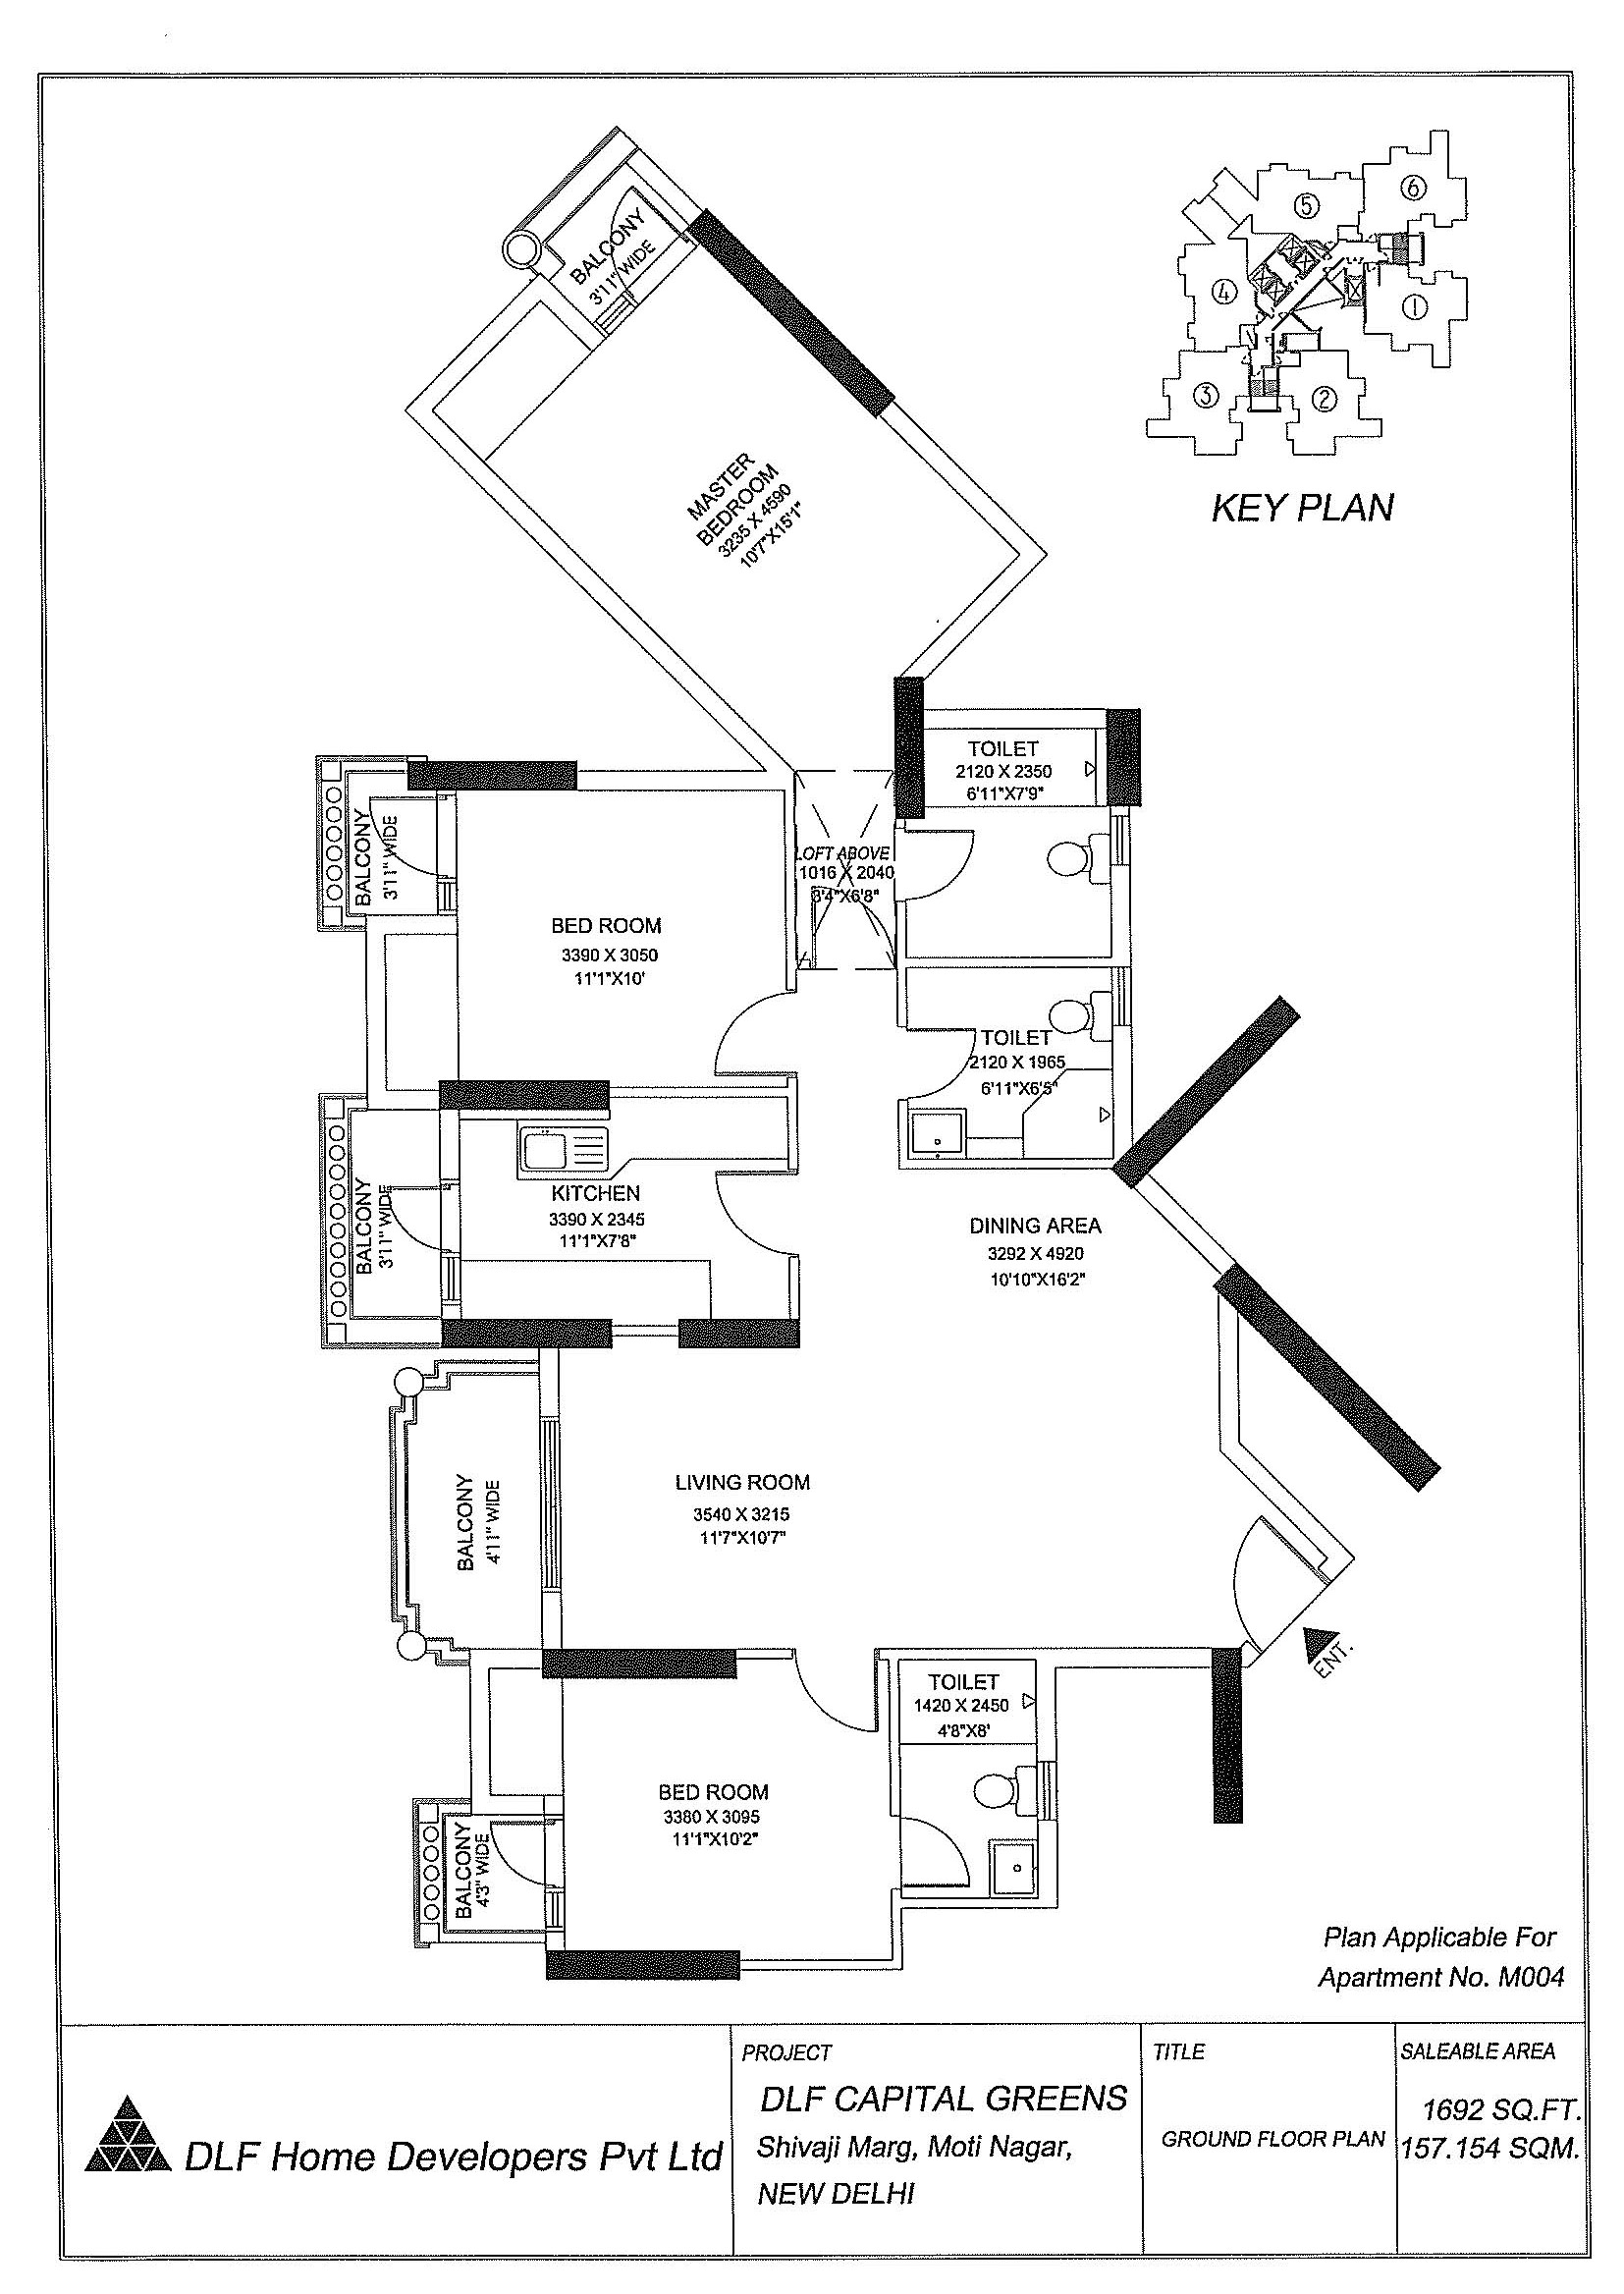 Area - 1692 Sq. Ft.